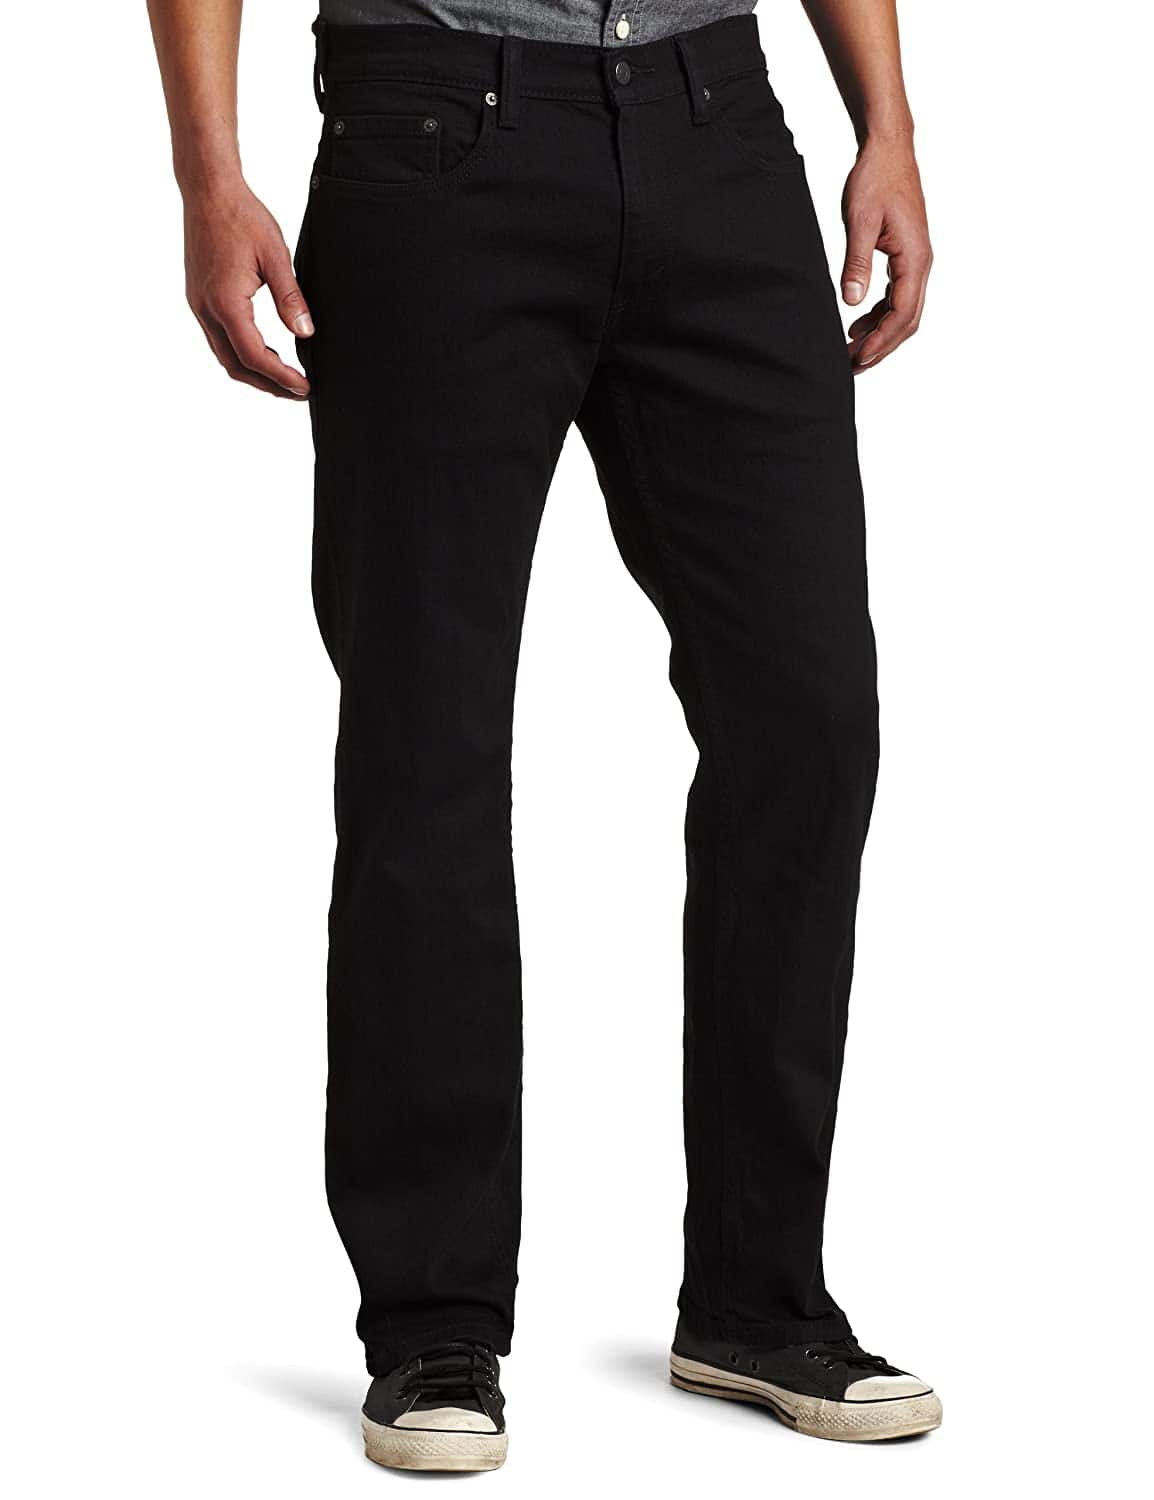 Levi's Men's 559 Relaxed Straight Jean (Black) $9 + Free Shipping w/ Prime or on $25+